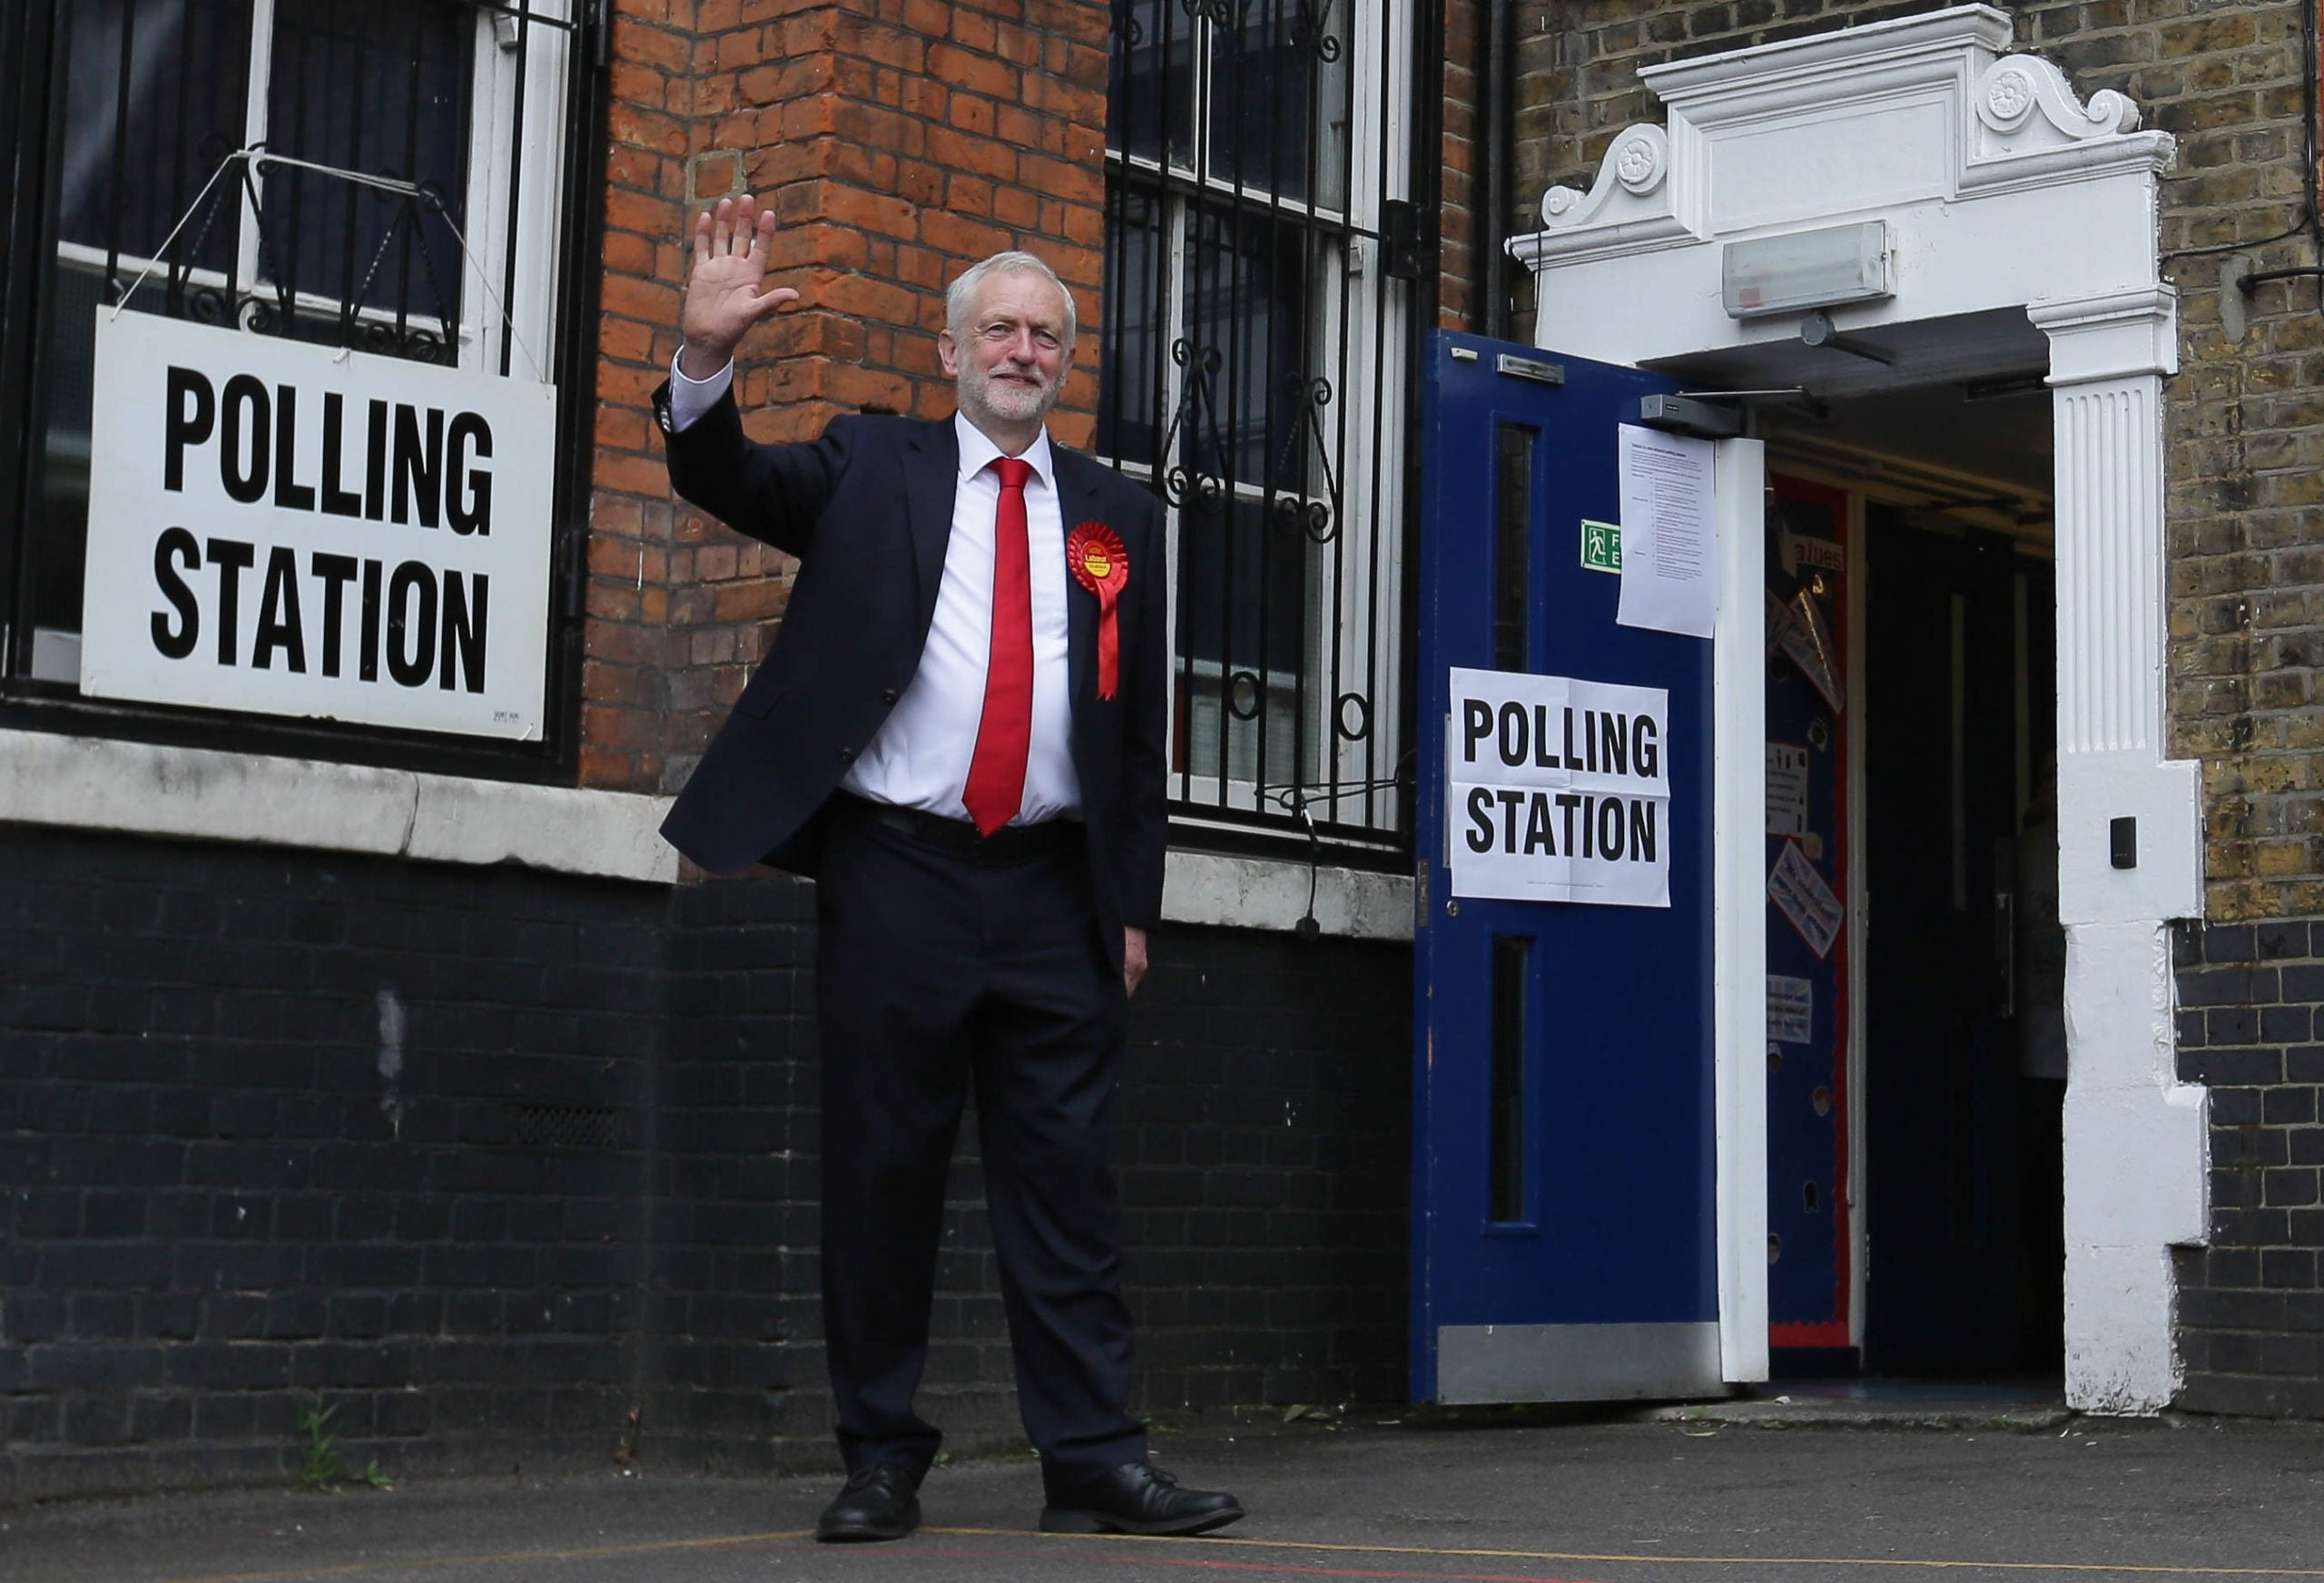 Basking in a surprise success, Corbyn's team is planning for victory next time